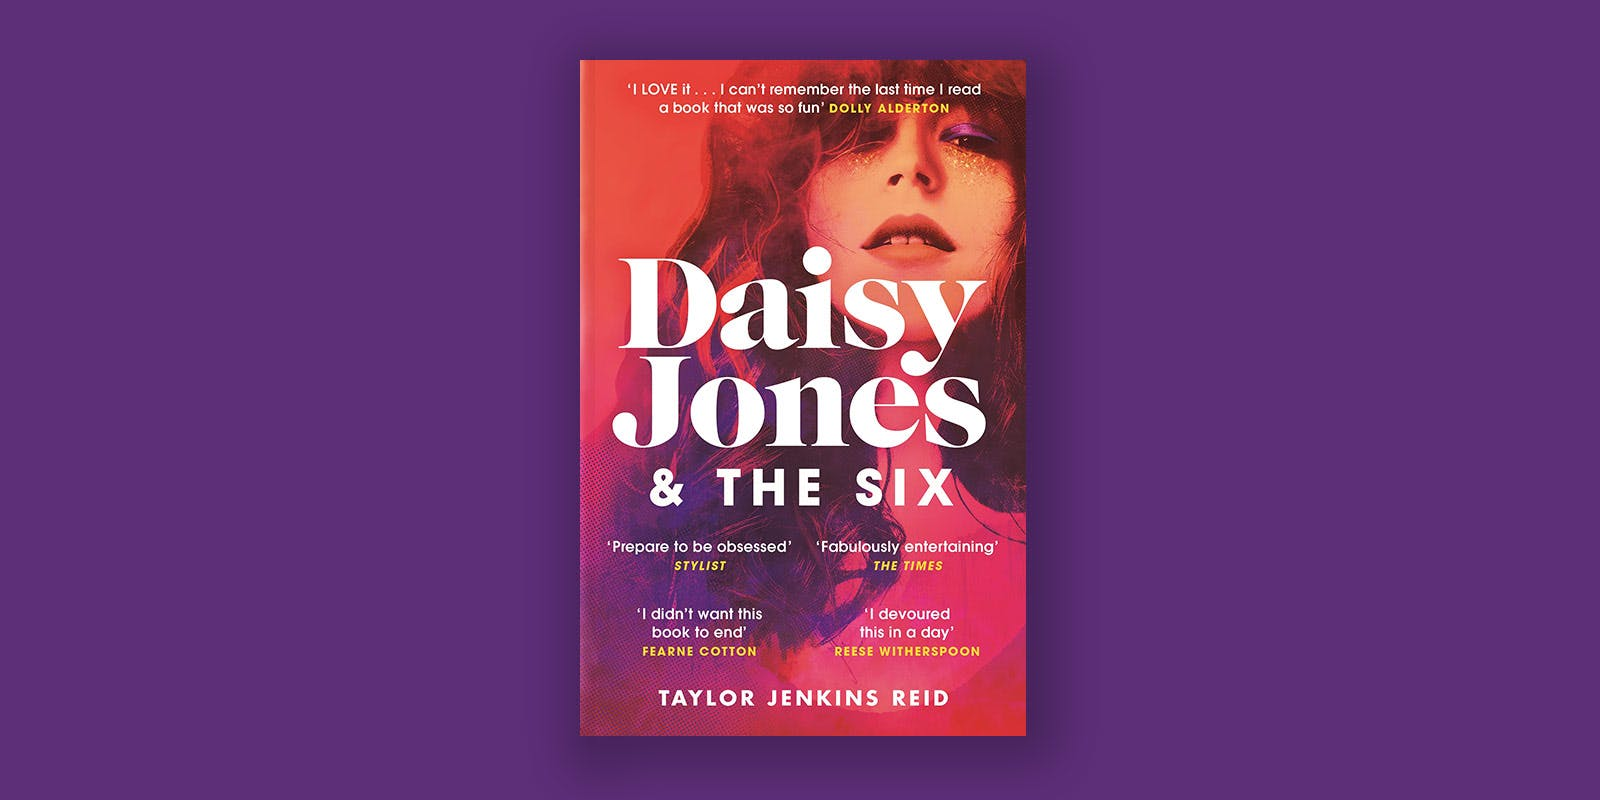 Daisy Jones and The Six book club notes